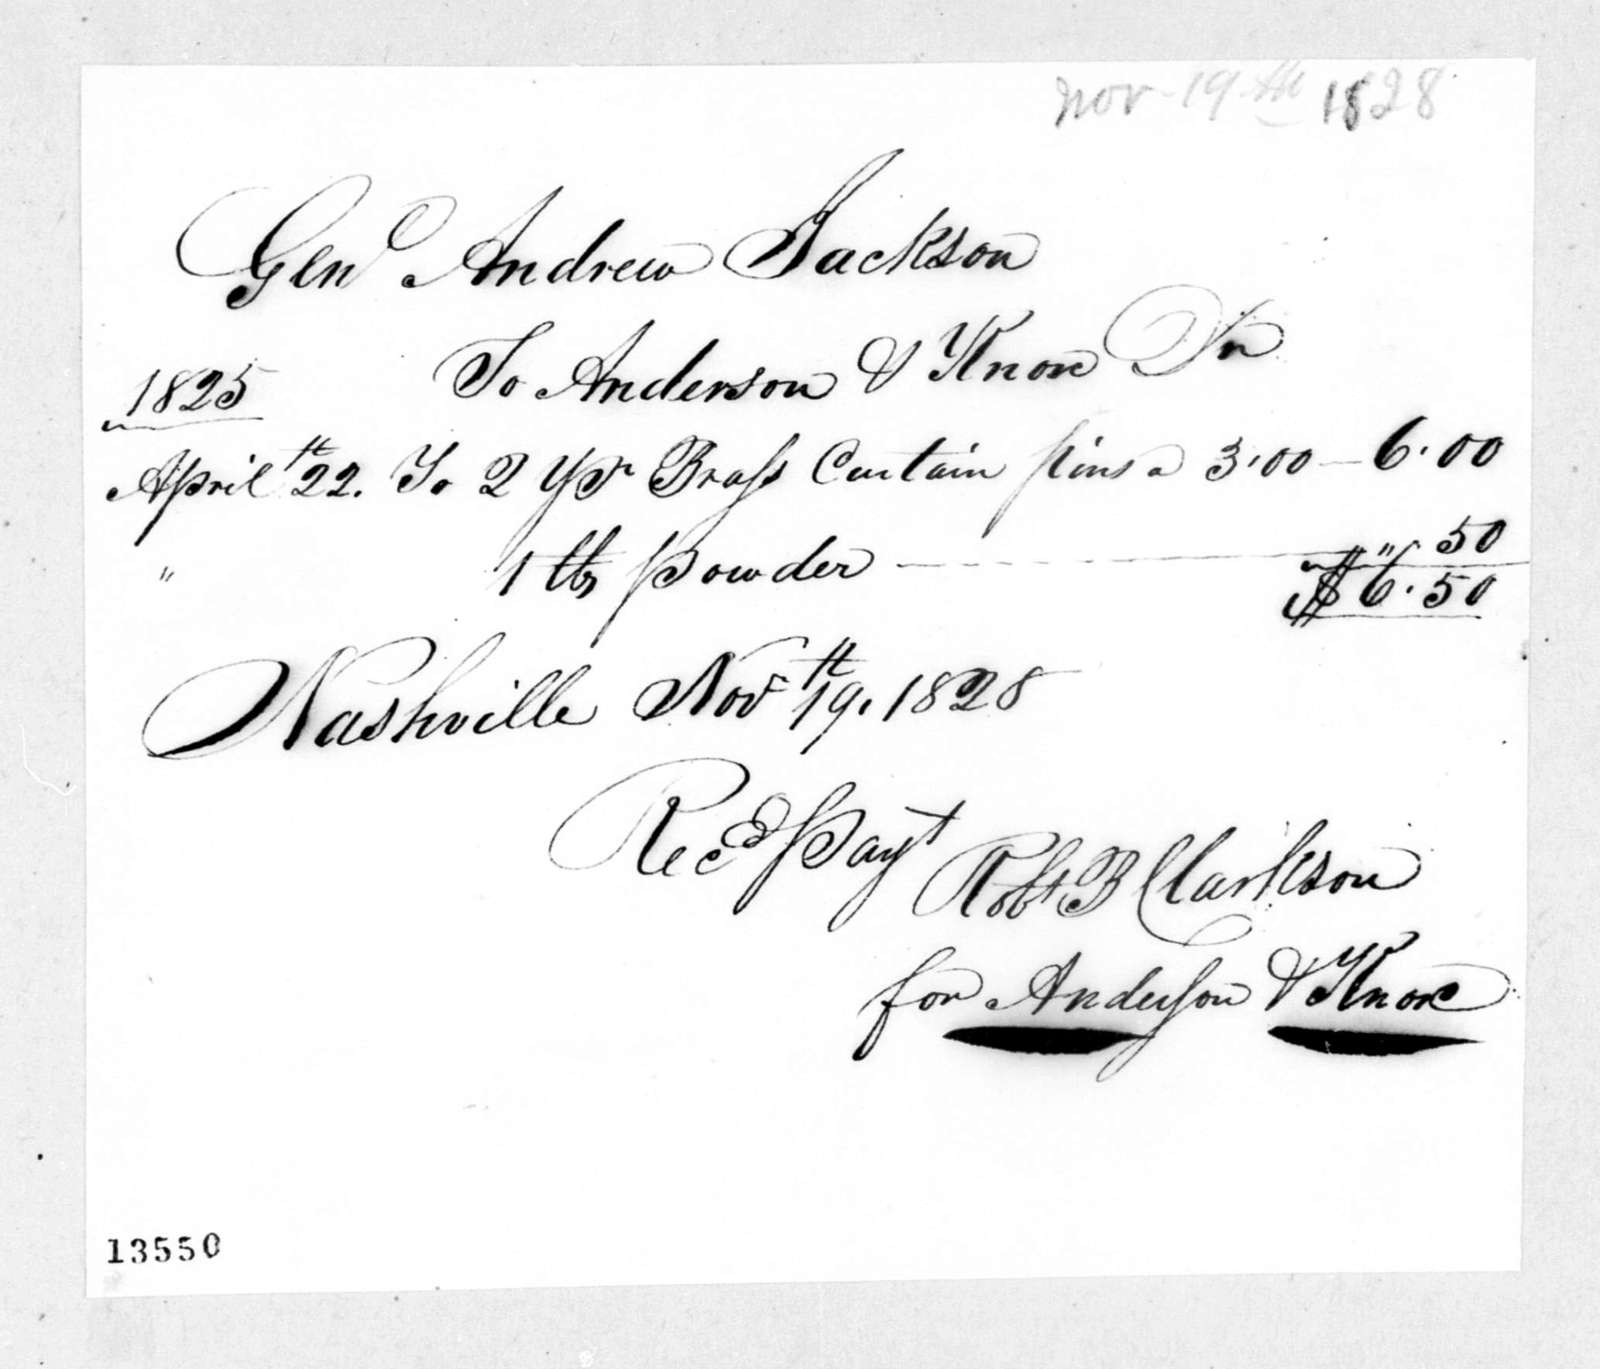 Anderson & Knox to Andrew Jackson, November 19, 1828